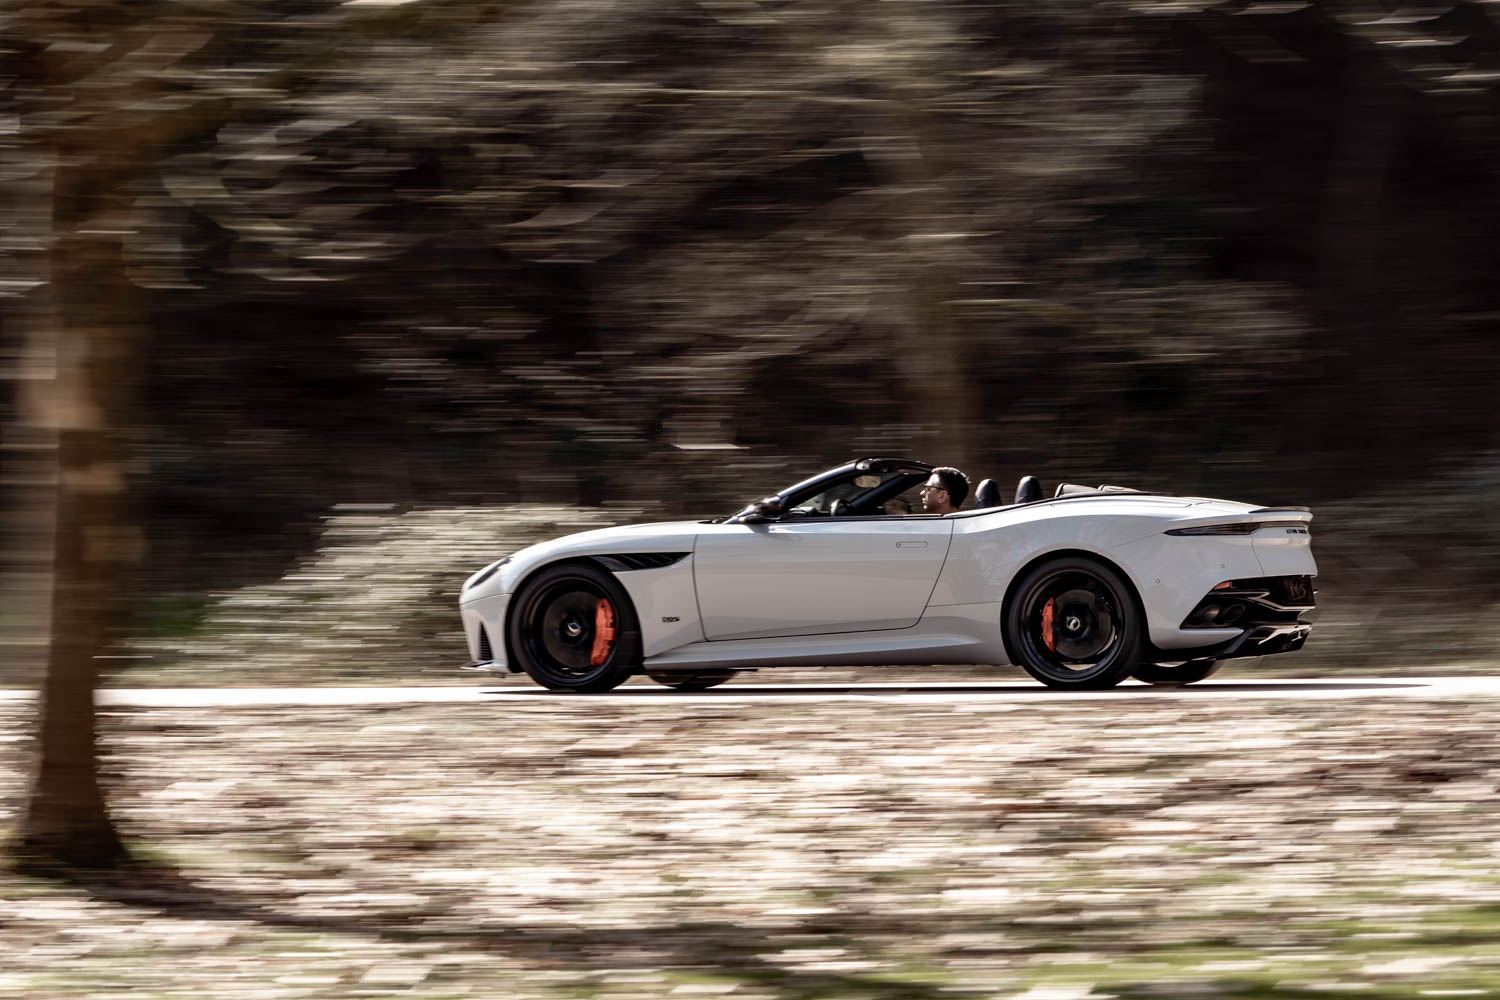 Aston Martin DBS Superleggara Volante driving